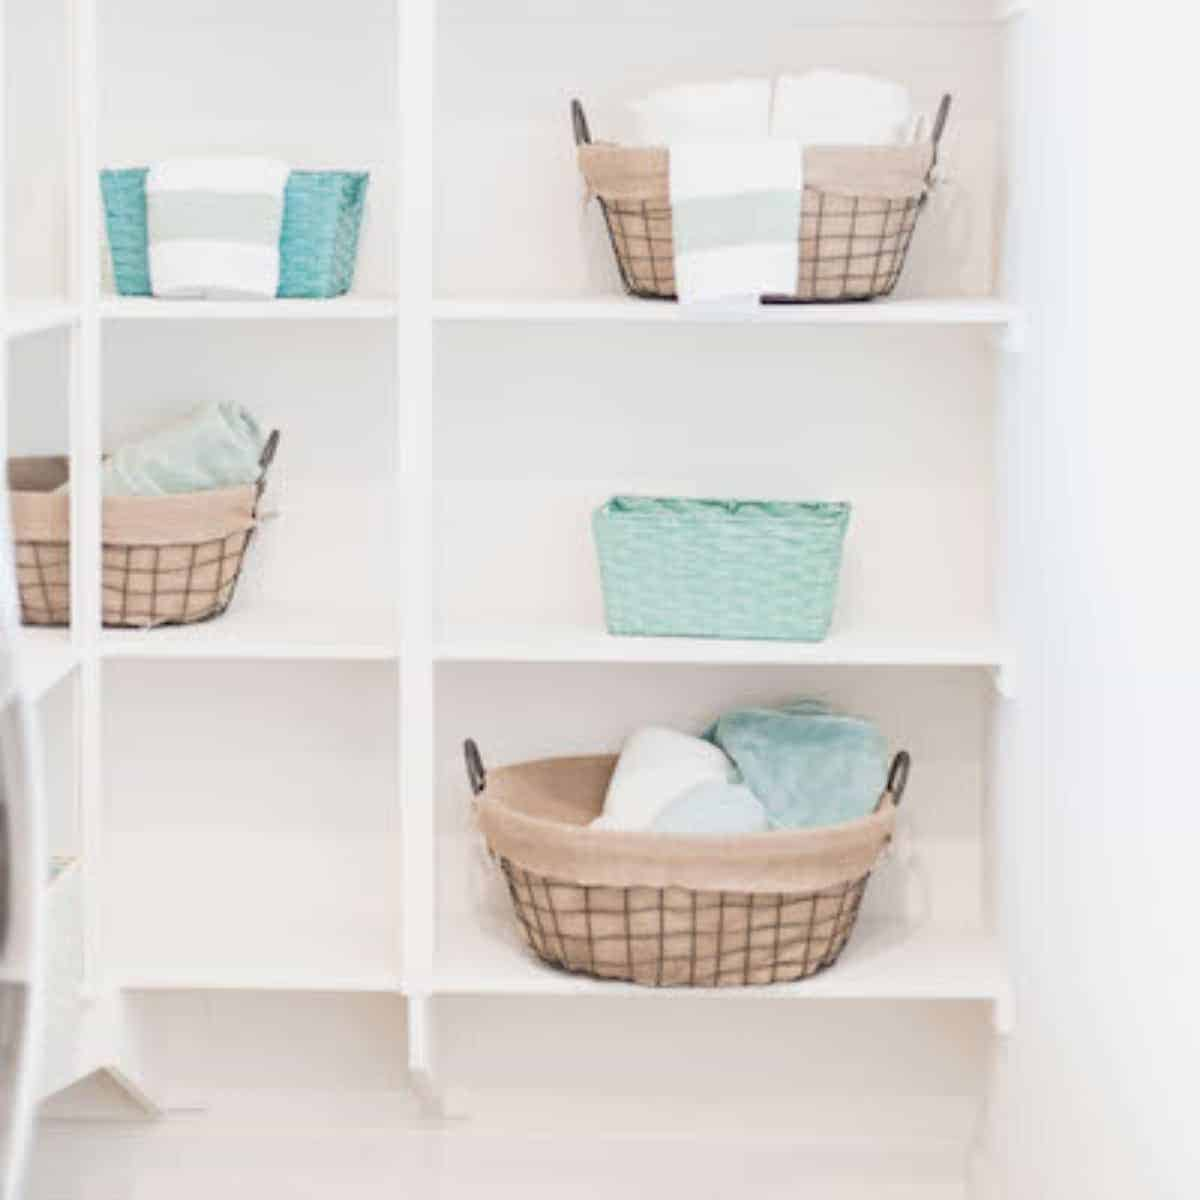 closet shelving with laundry baskets and linens